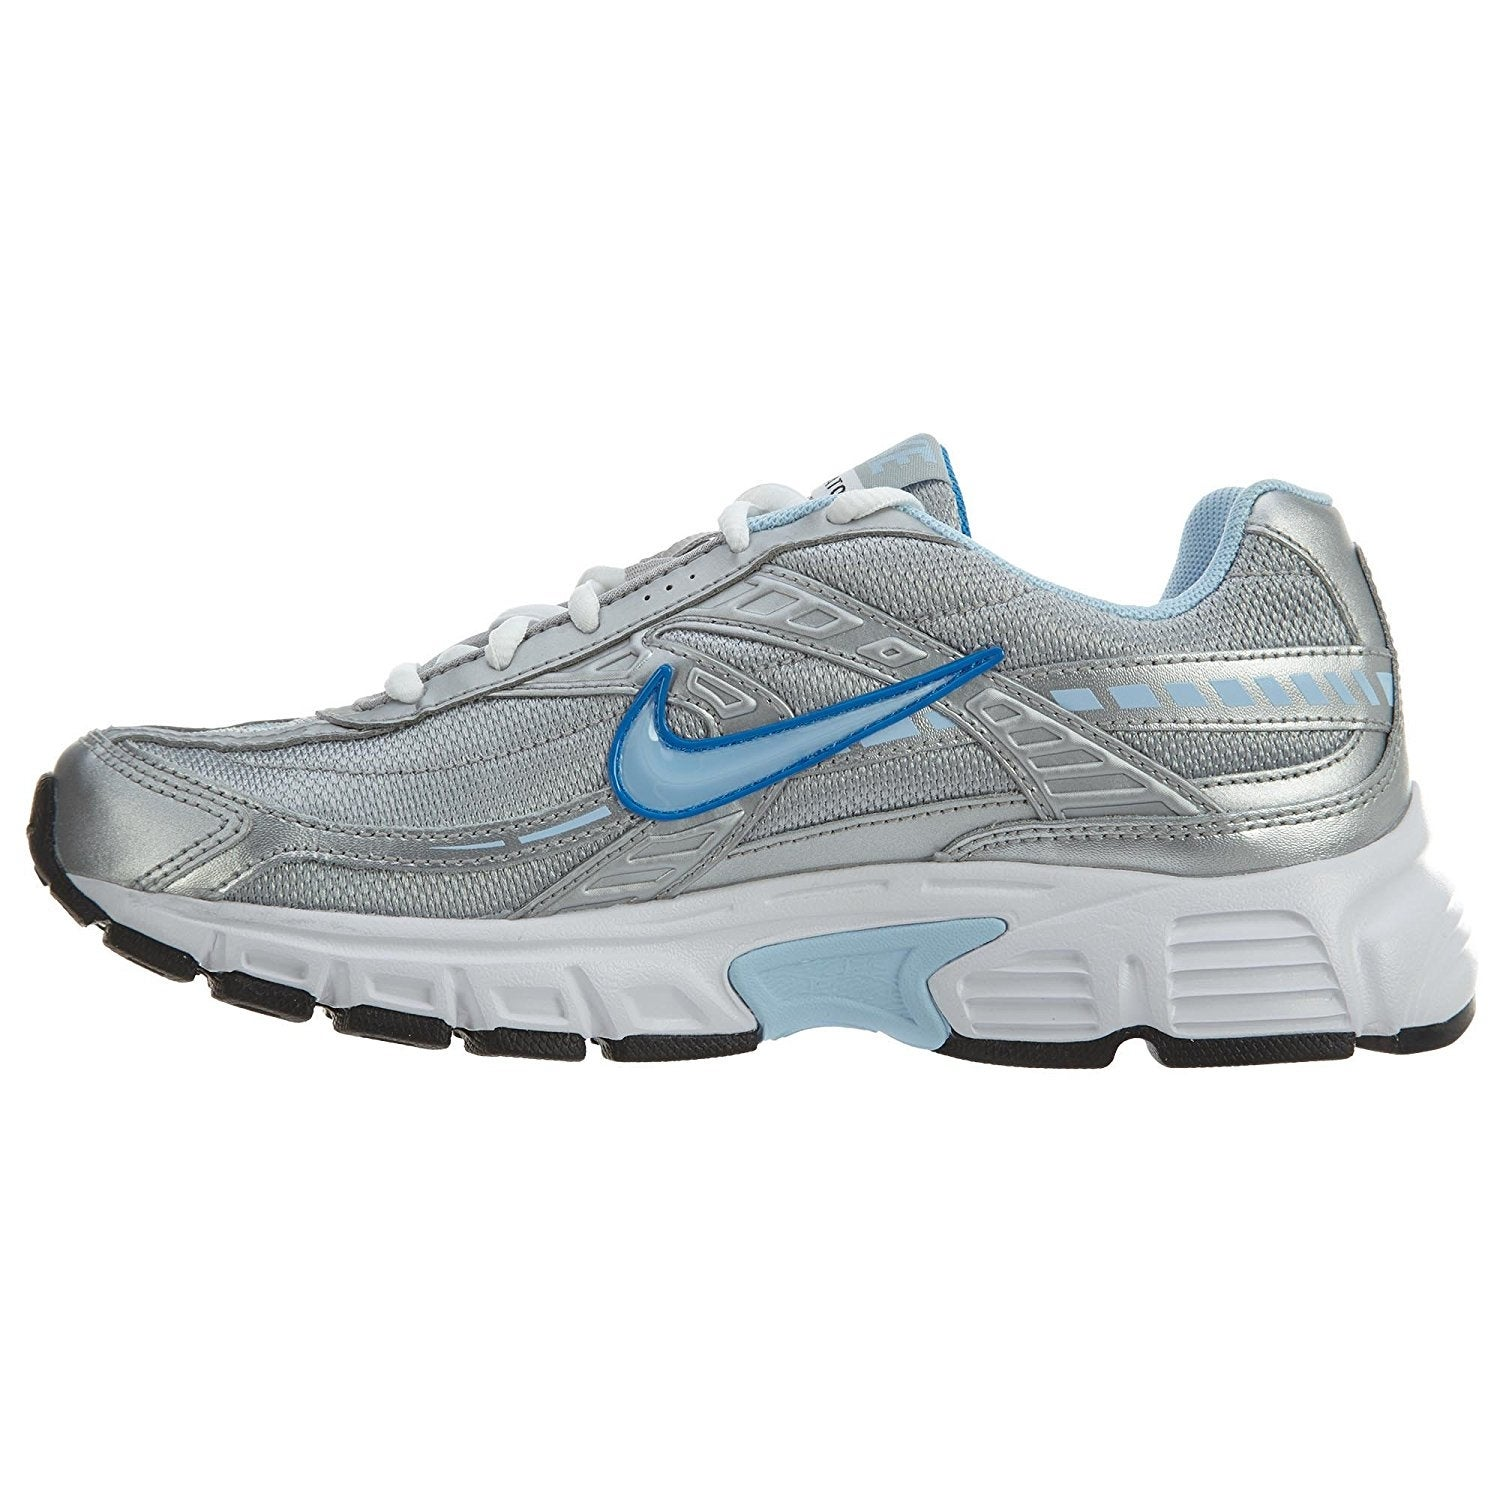 cd3e6ee7caa Shop Nike Womens Nike Initiator Style  394053-001 Low Top Lace Up Tennis  Shoes - Free Shipping On Orders Over  45 - Overstock - 17940823